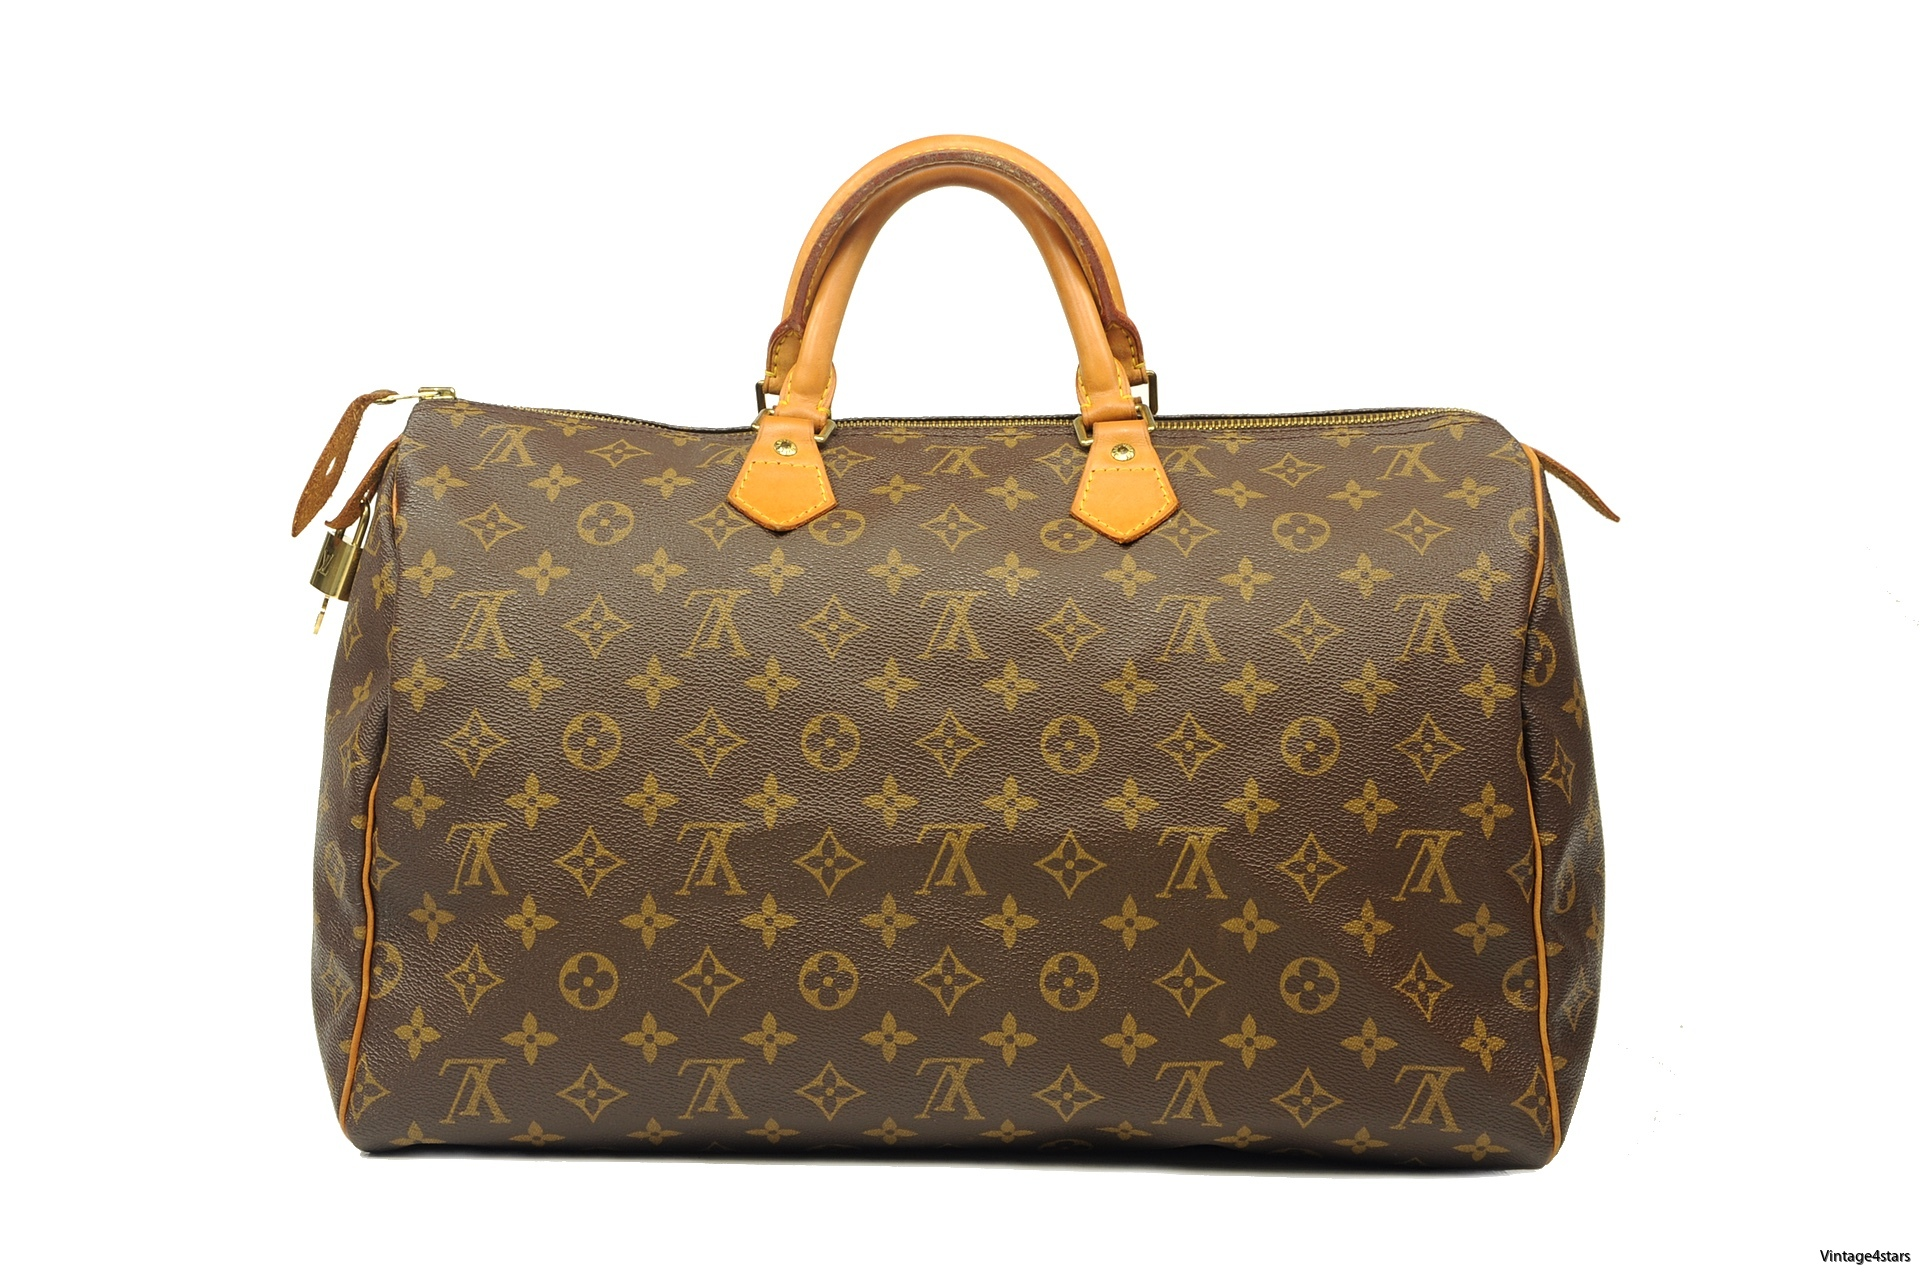 LOUIS VUITTON SPEEDY 40 1